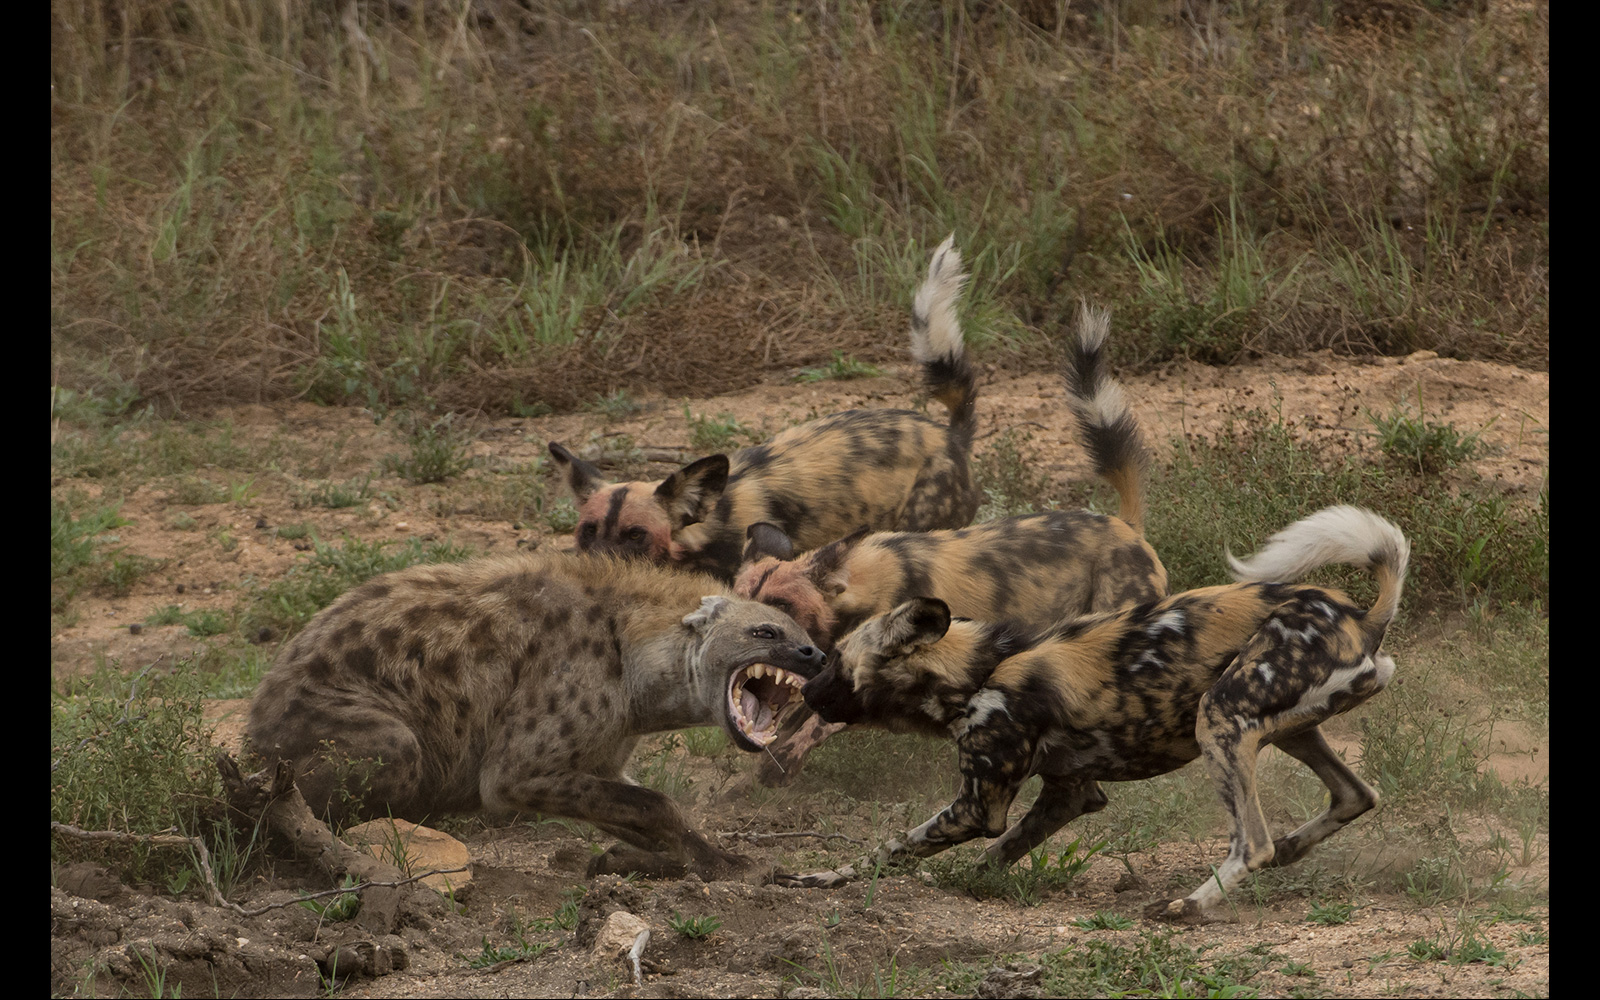 """Street wars"" in Timbavati Game Reserve, South Africa © Luke Street"